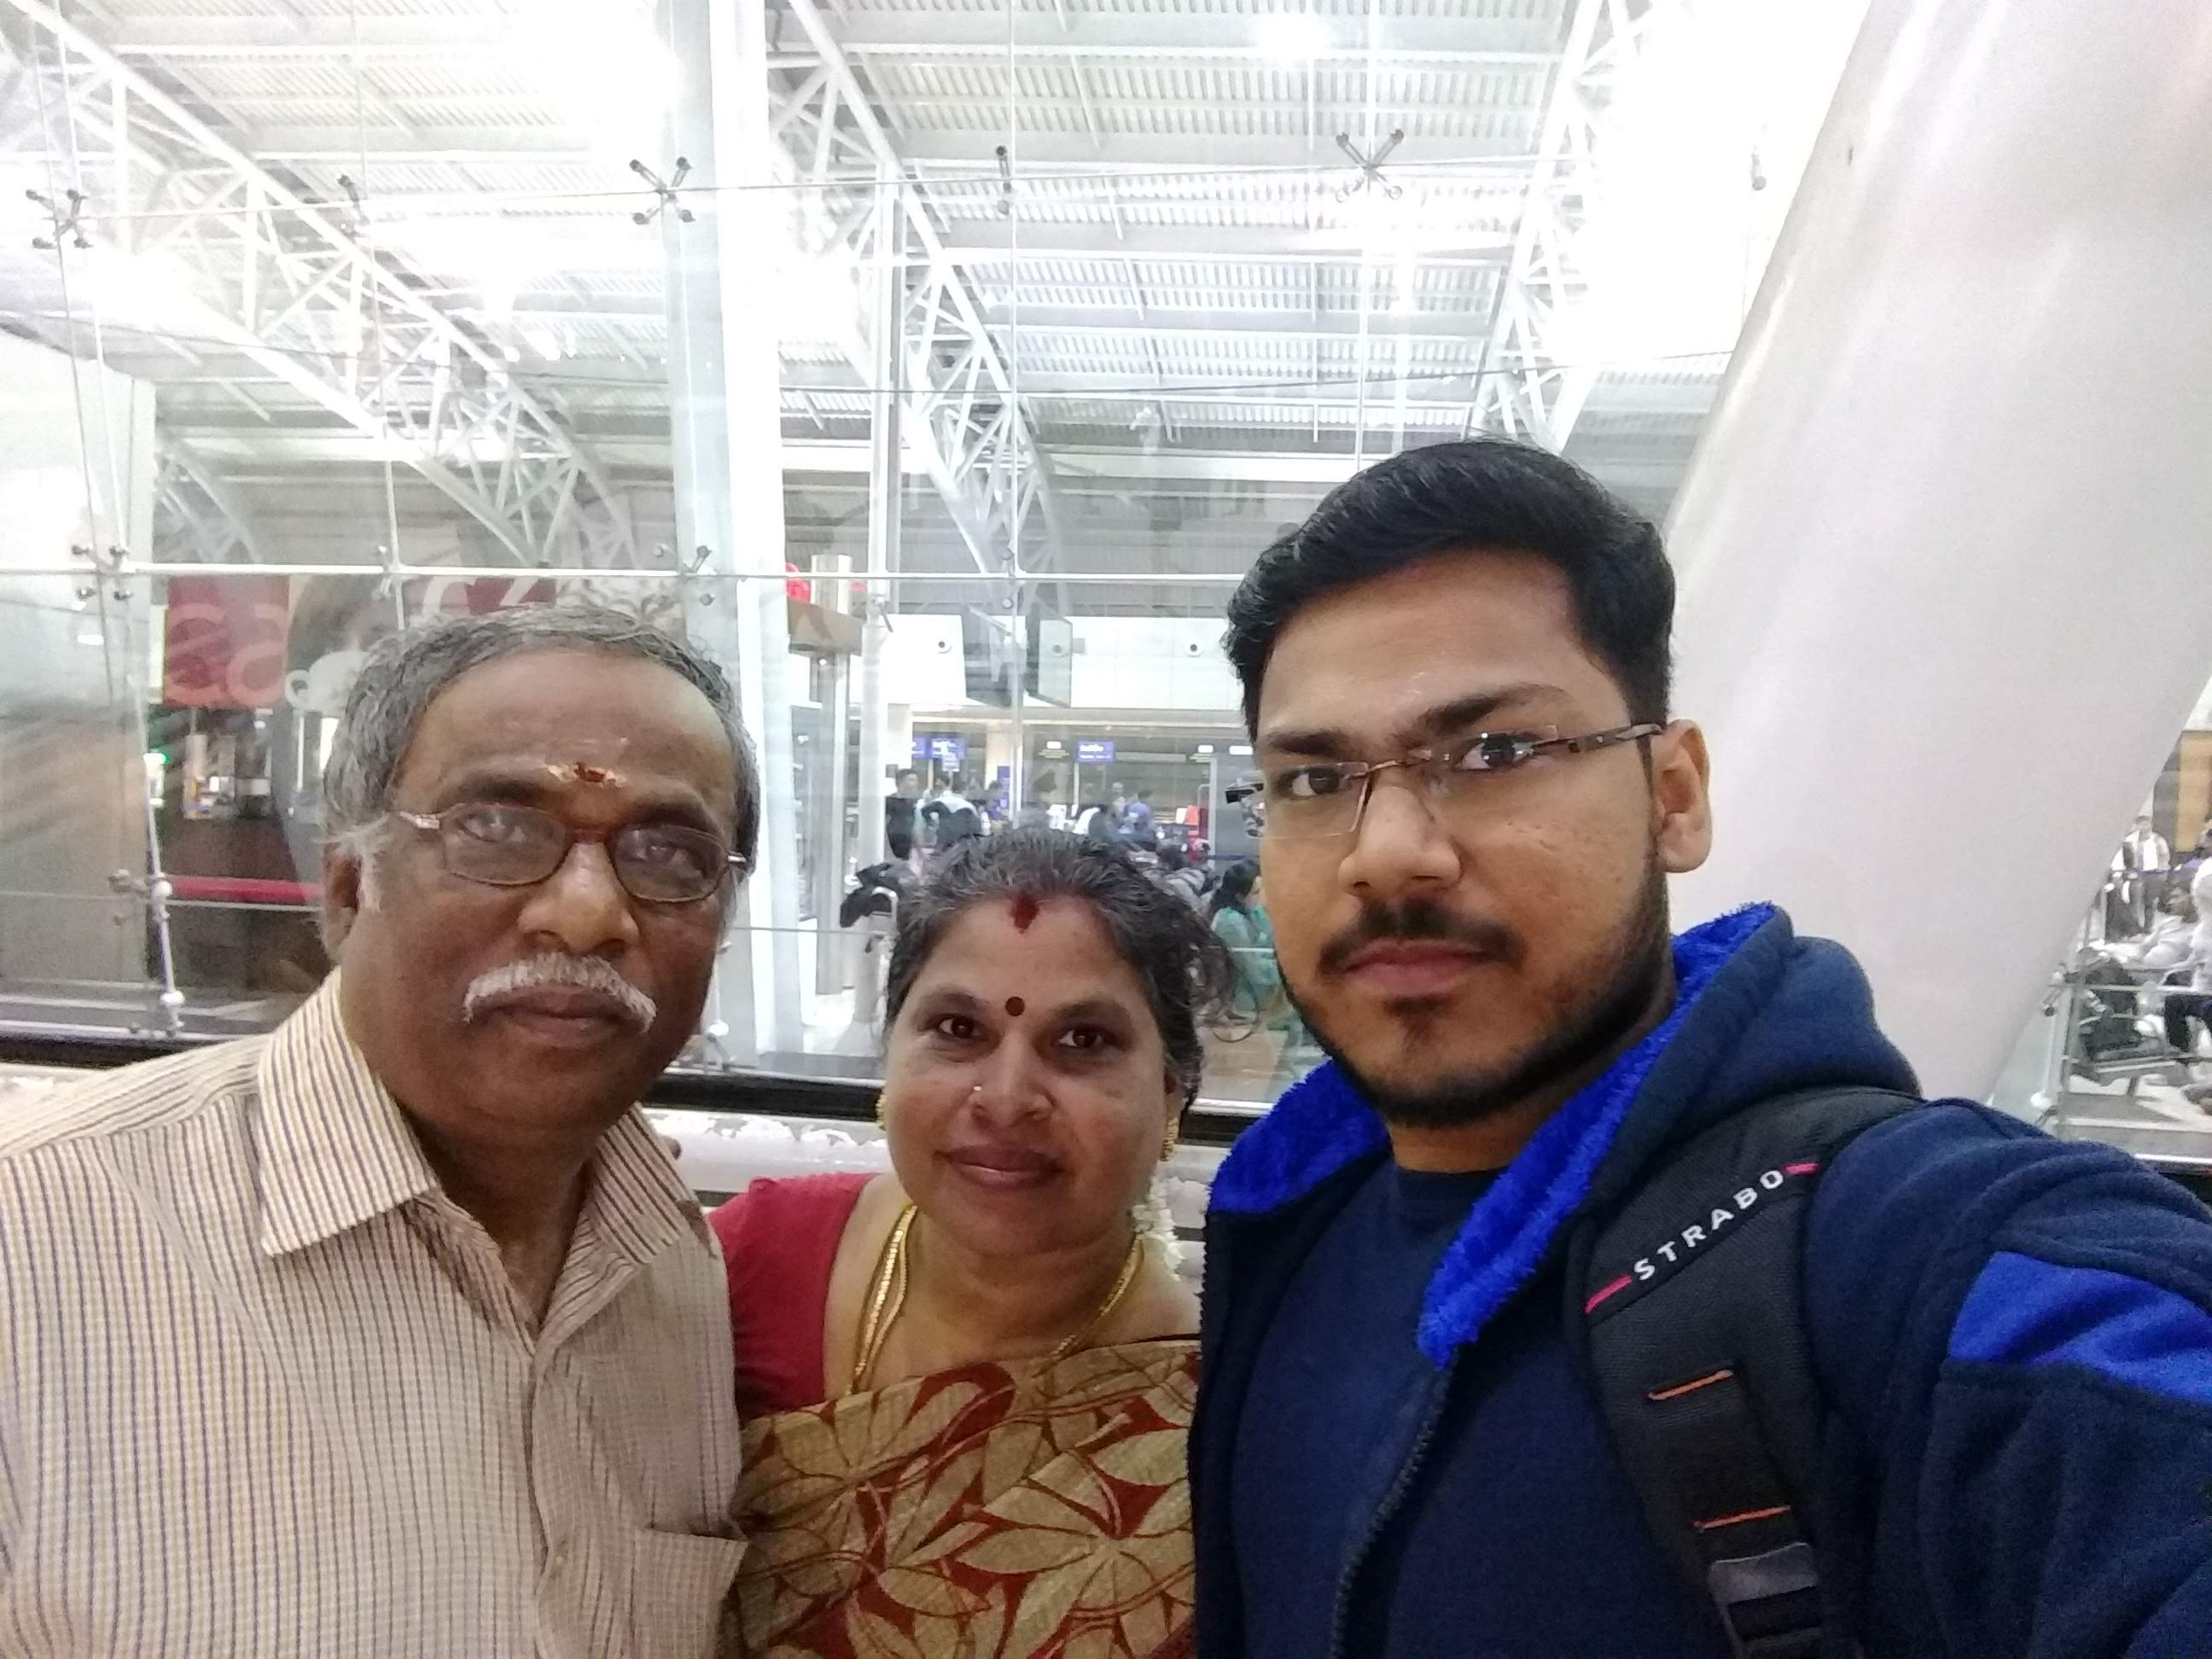 Kerala: My Frist Domestic Flight to Join my Dream Company